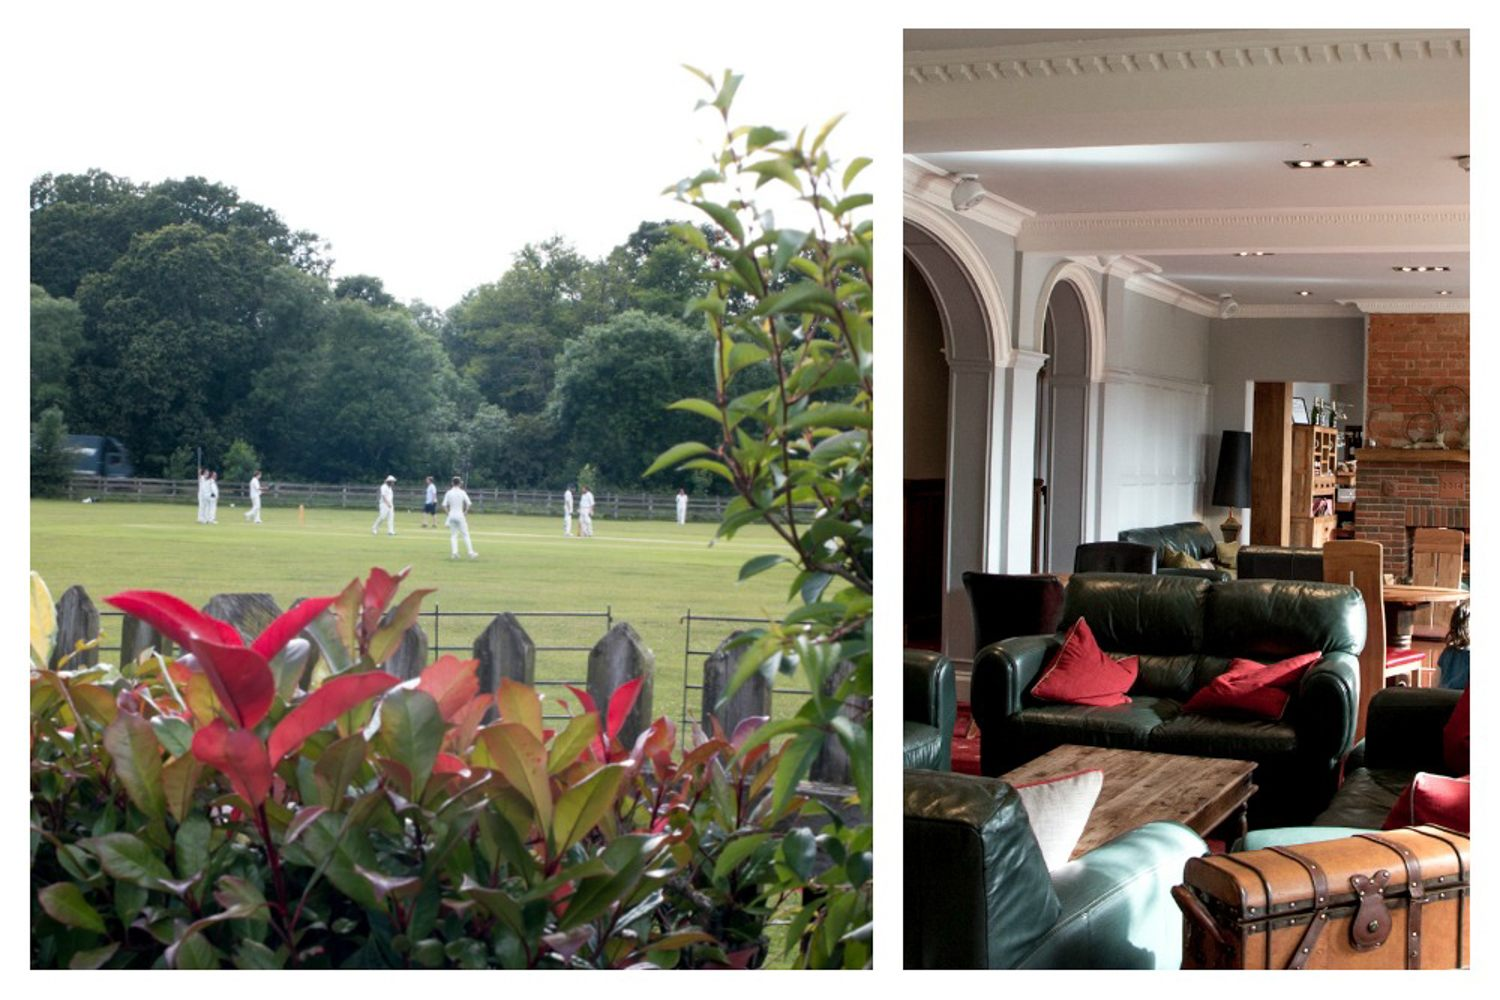 Overlooking a cricket field in the New Forest, historic Balmer Lawn Hotel is now a modern full-service hotel. 5 Great Hotels in South England